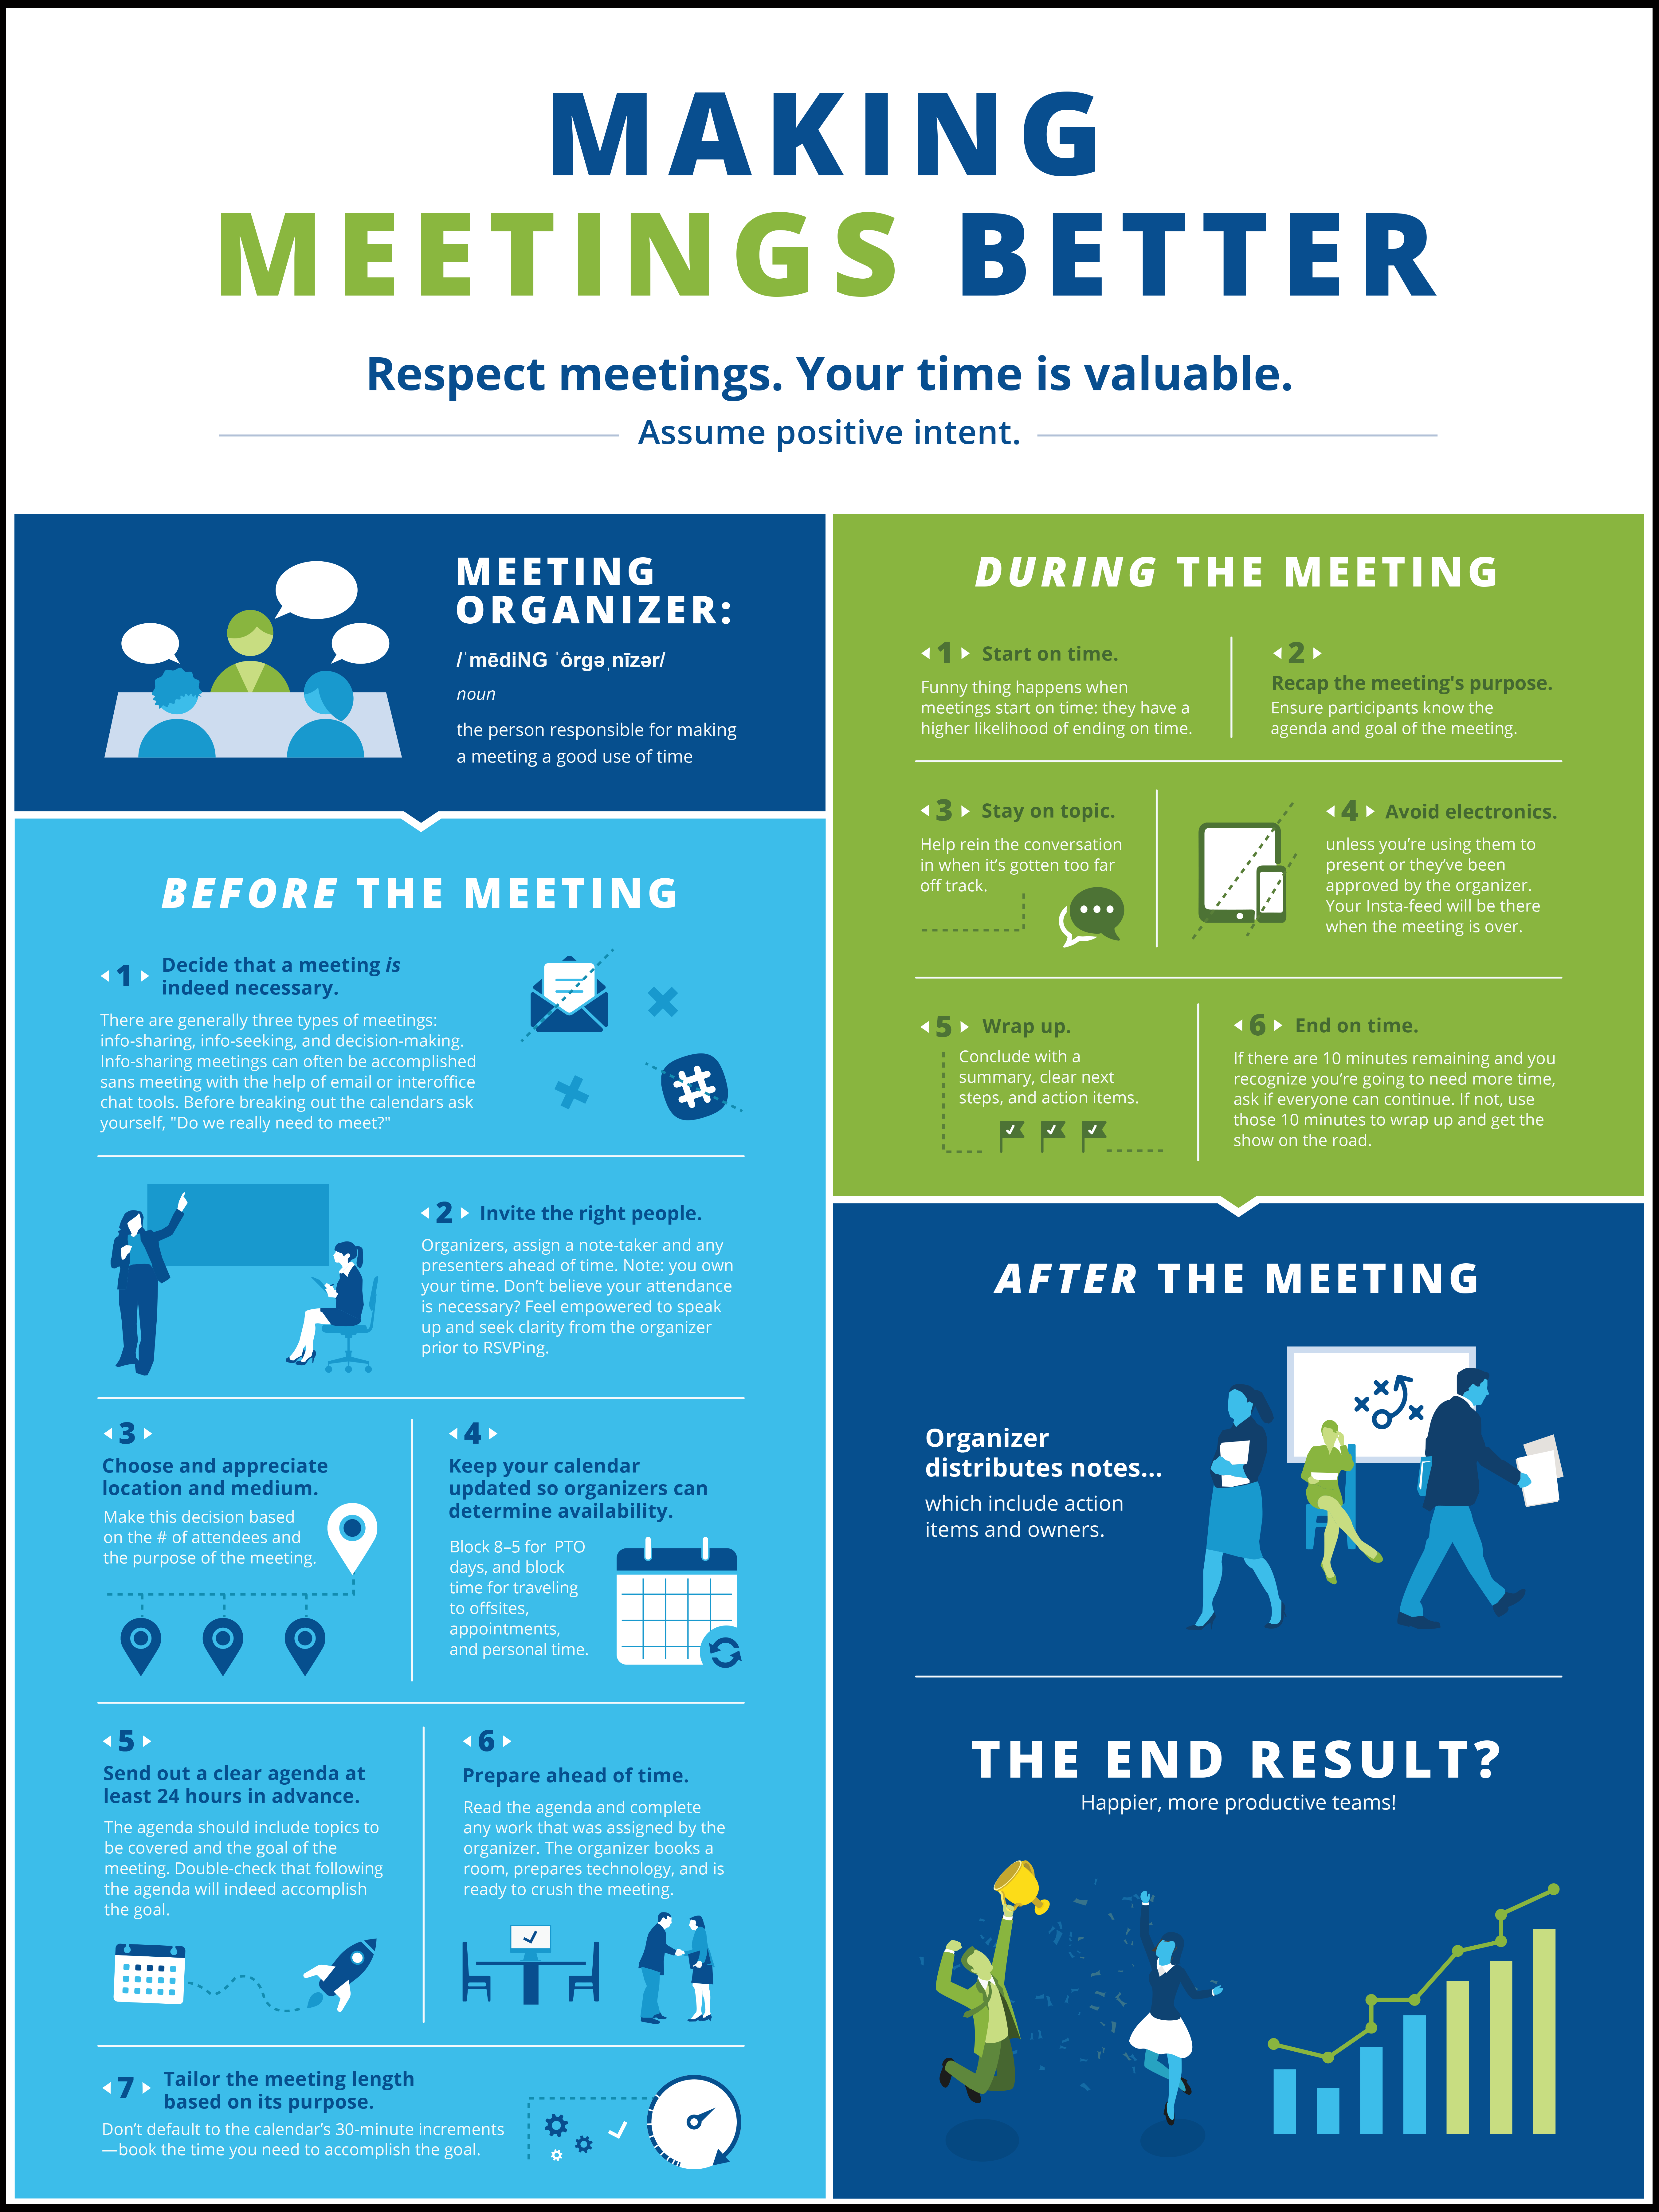 meeting_infographic_18x24_border